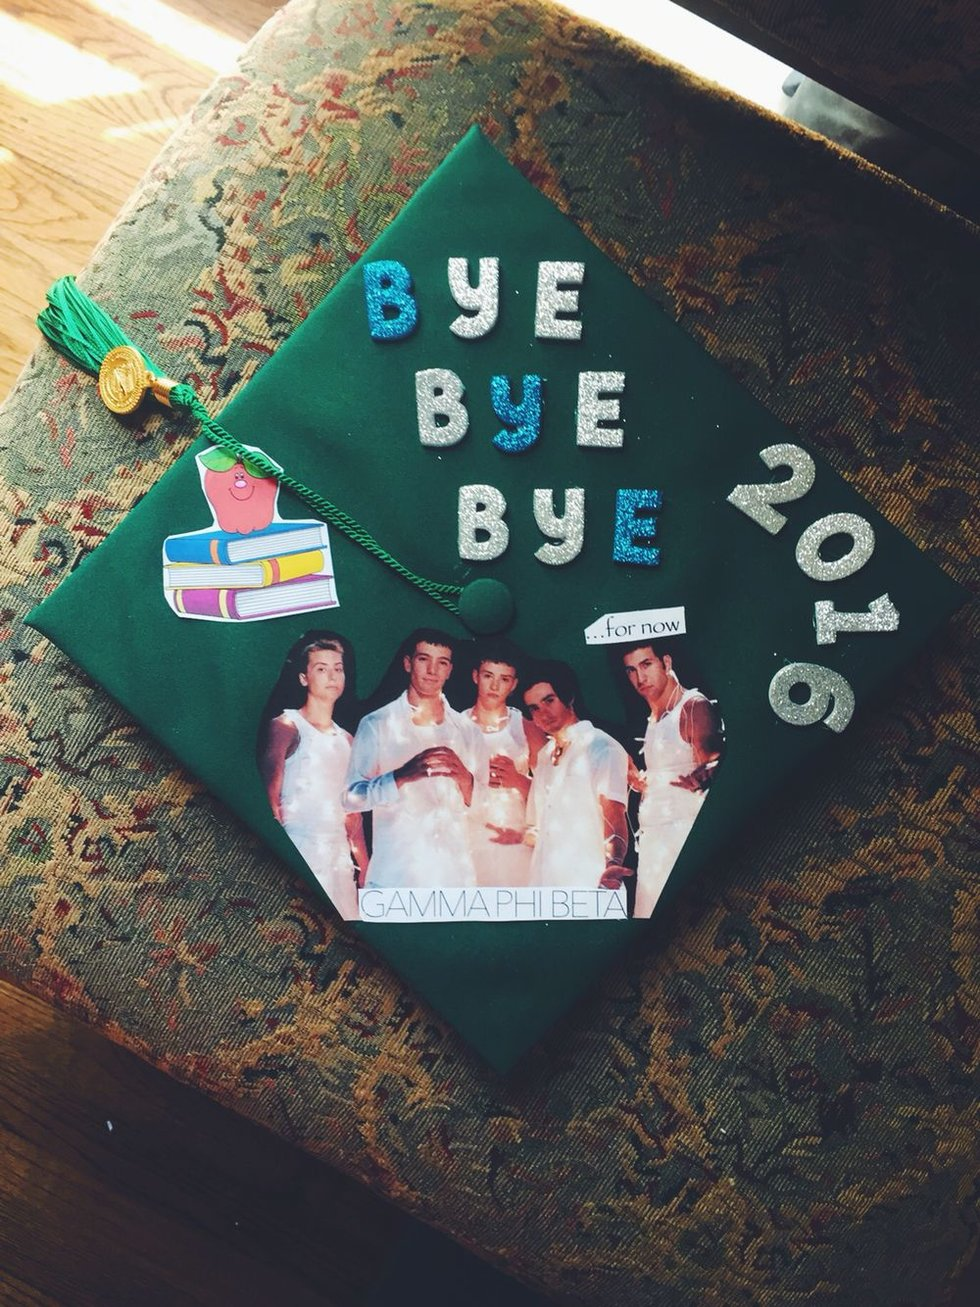 Swanky Order To Keep Graduation Cap Decoration Ideas Inspiration Lives Is Not Too It Isimportant To Keep Comedy This Design Contains A Ny Reference ideas Funny Graduation Cap Ideas